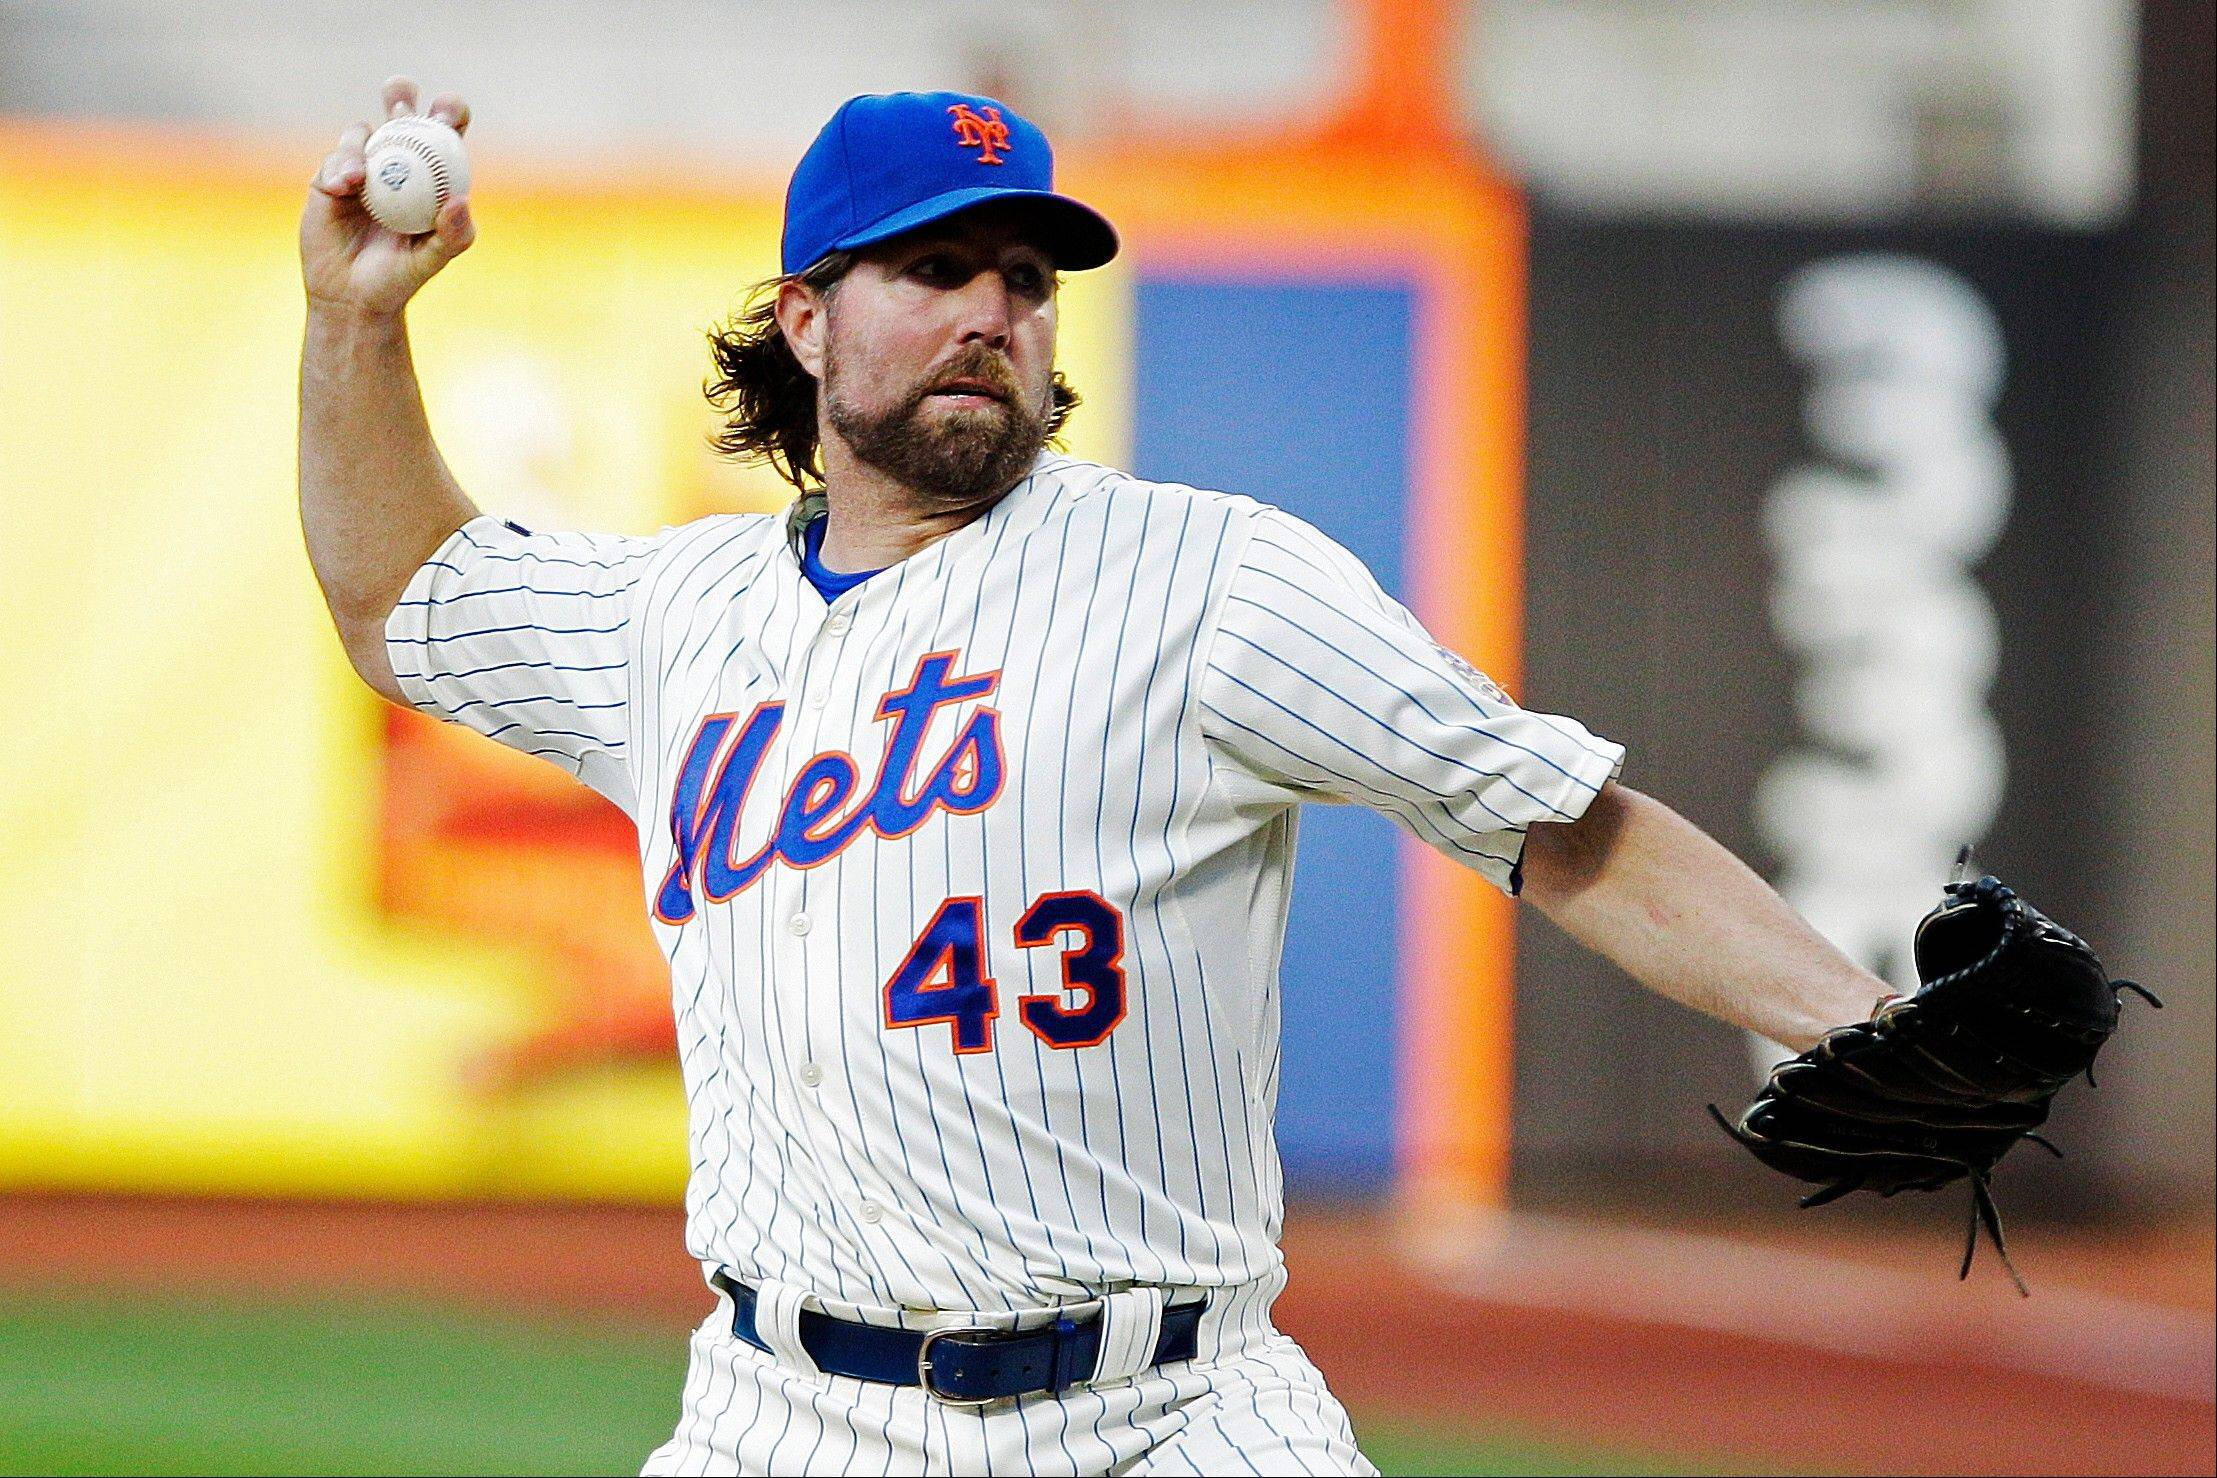 New York Mets pitcher R.A. Dickey has walked just 26 batters in 120 innings. His 123 strikeouts are 11 shy of his career high, established last year in 208 innings.